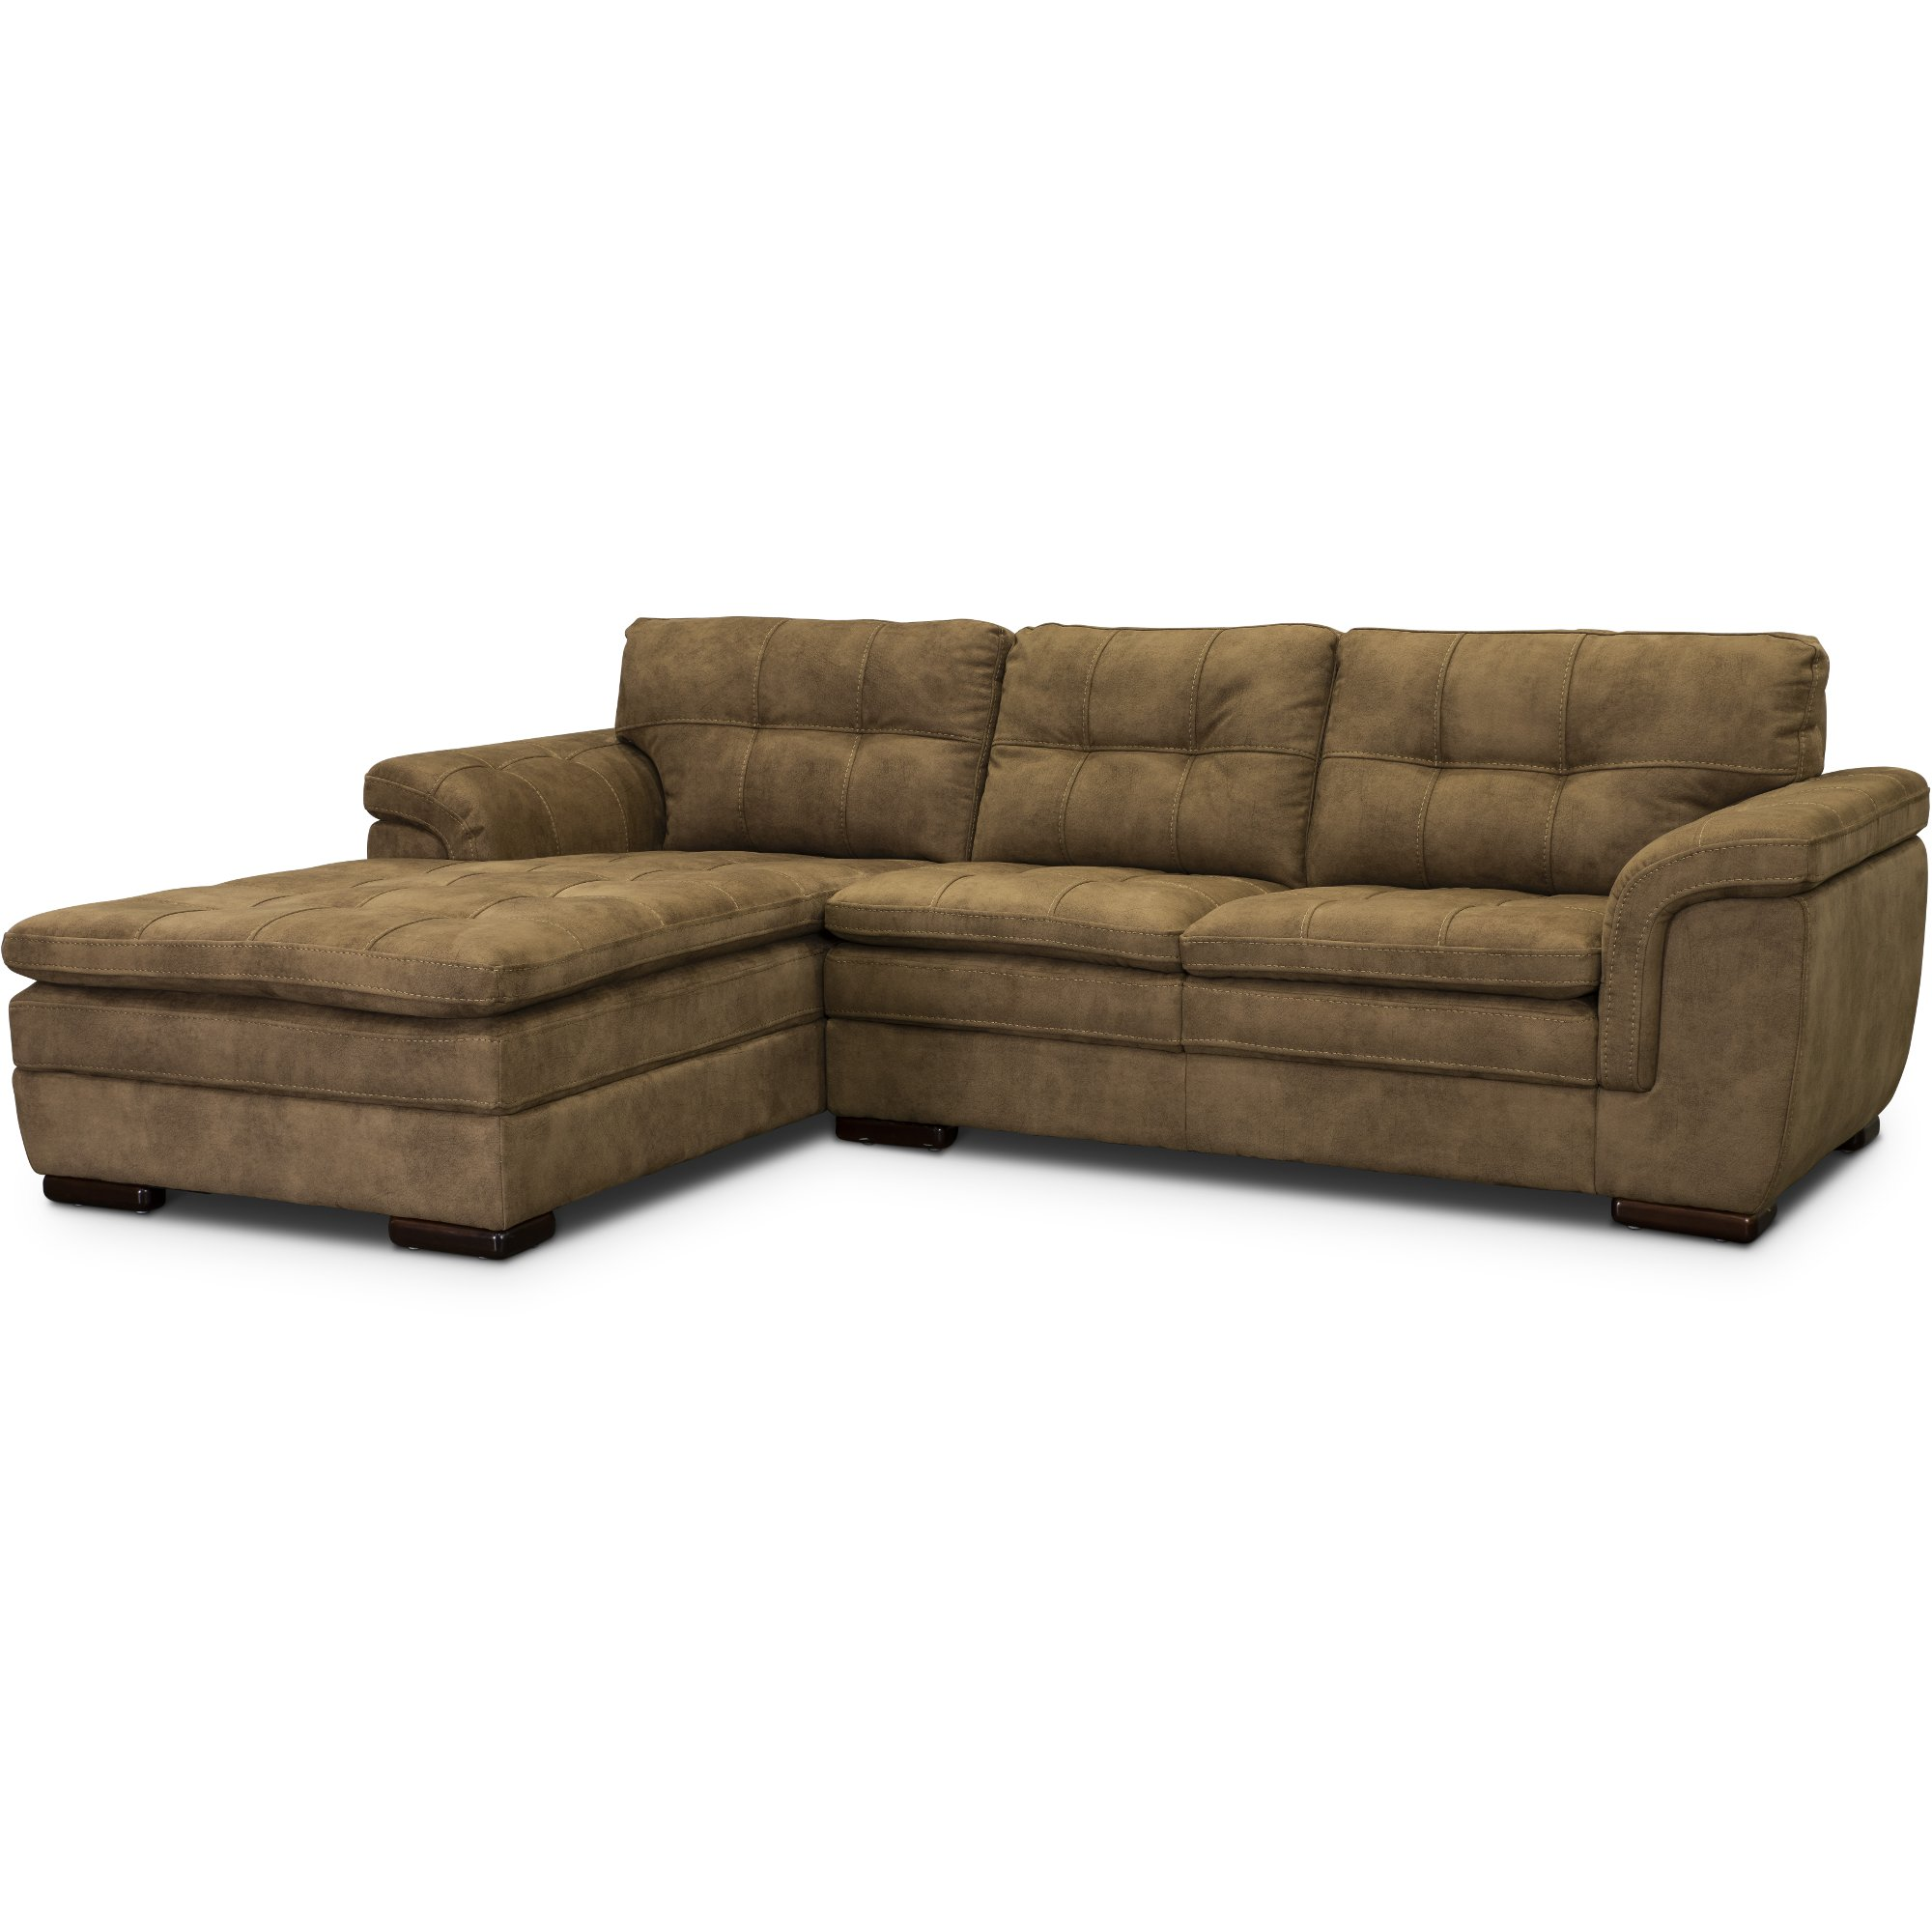 Taupe Brown 2 Piece Sectional Sofa With Laf Chaise Sandy